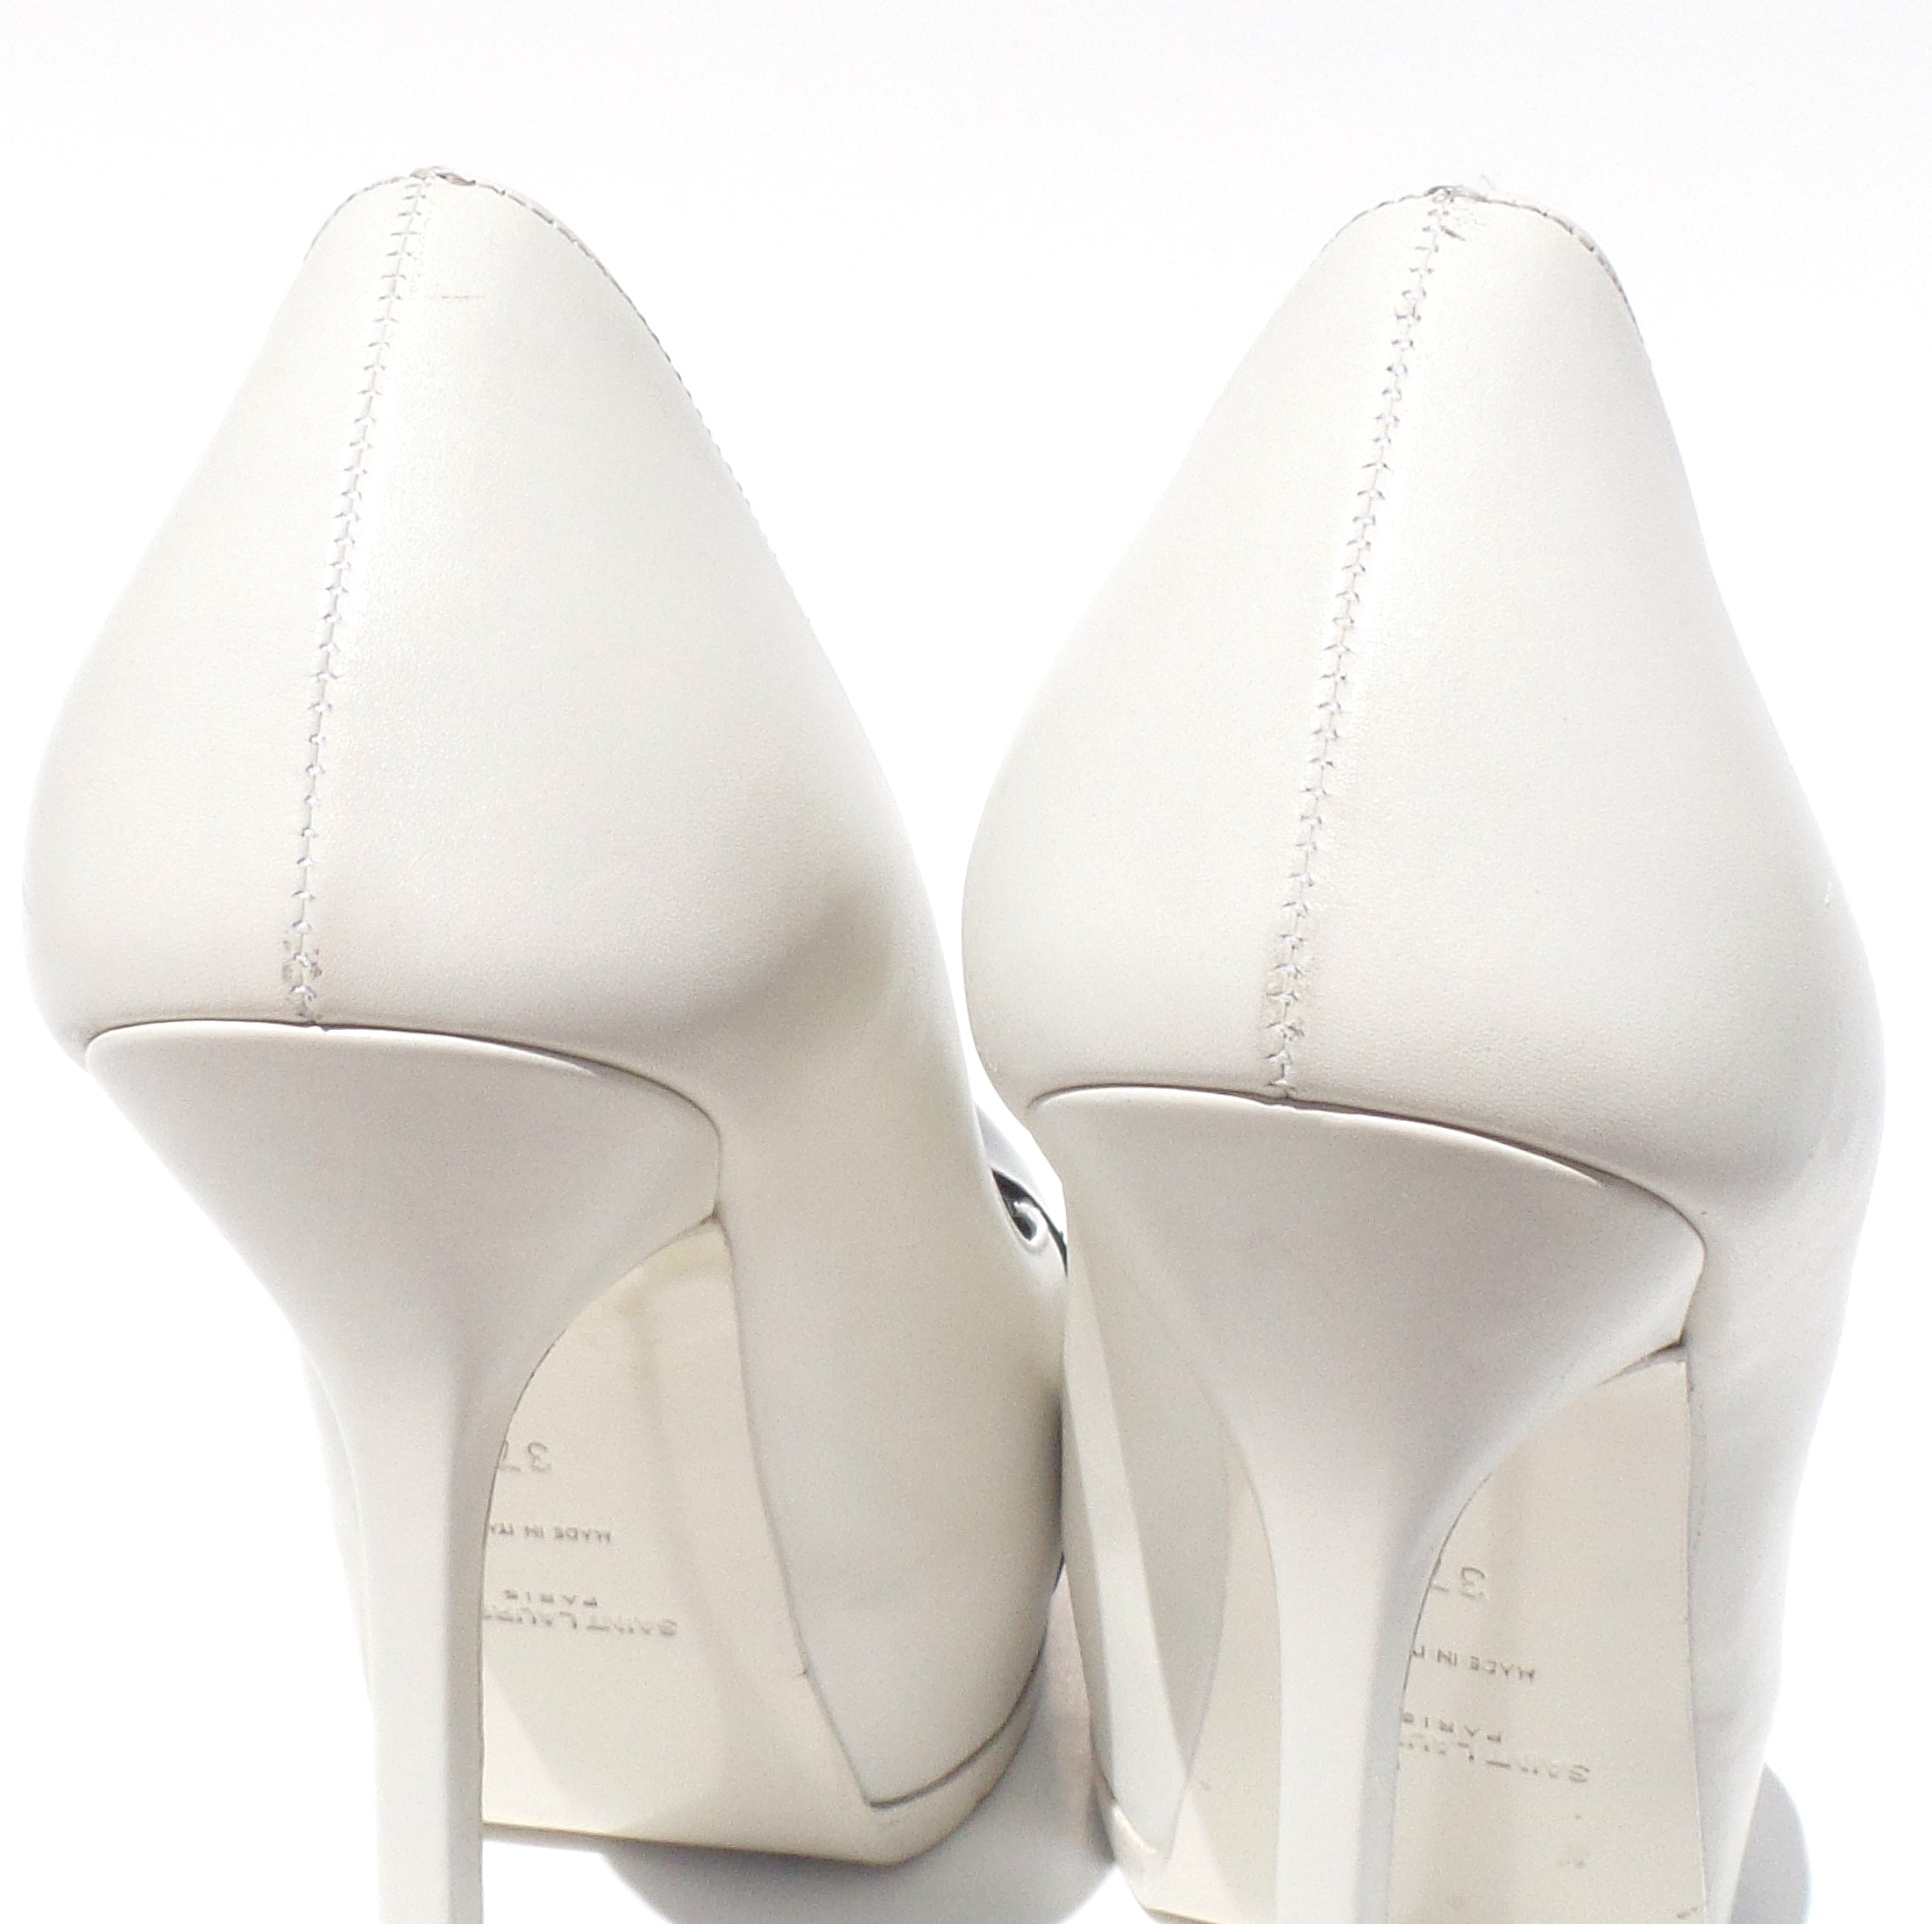 YVES SAINT LAURENT White Leather Black Patent Cap Toe Tribute Two Heels Pumps 37